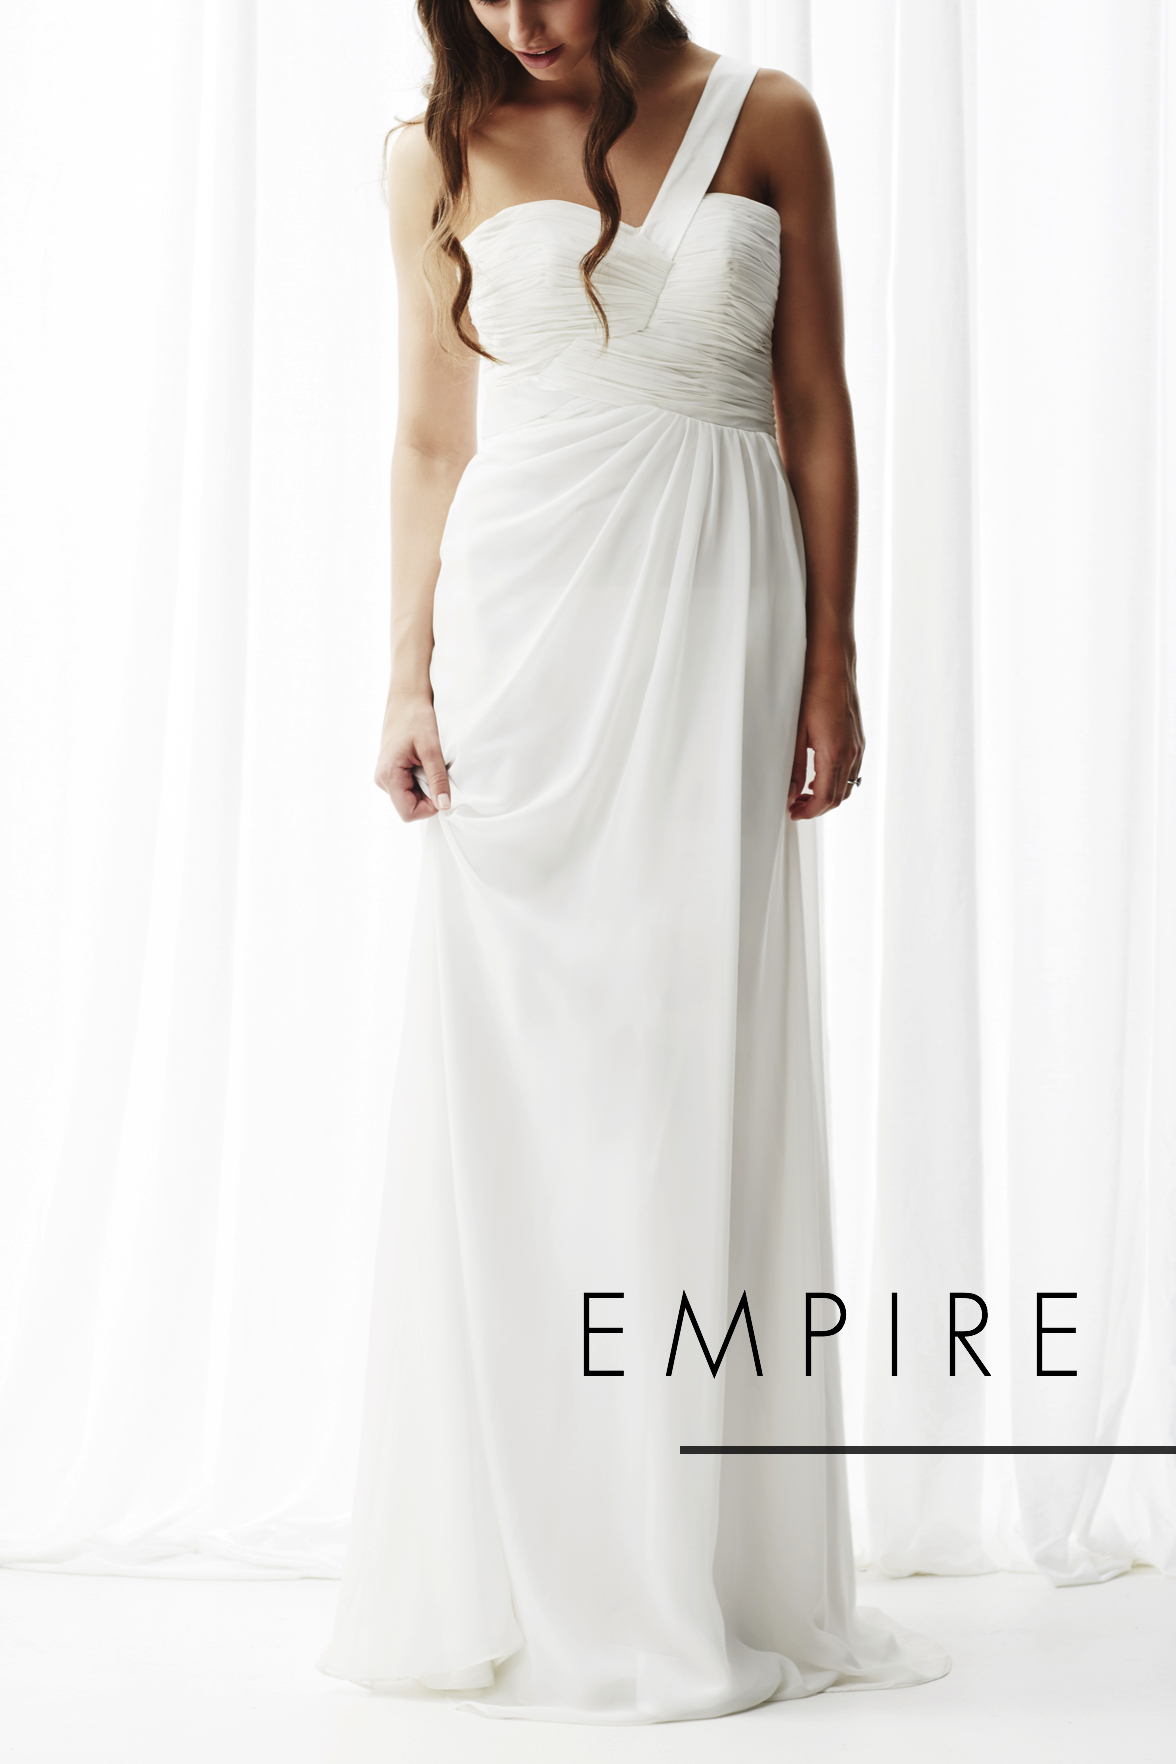 Empire Dresses